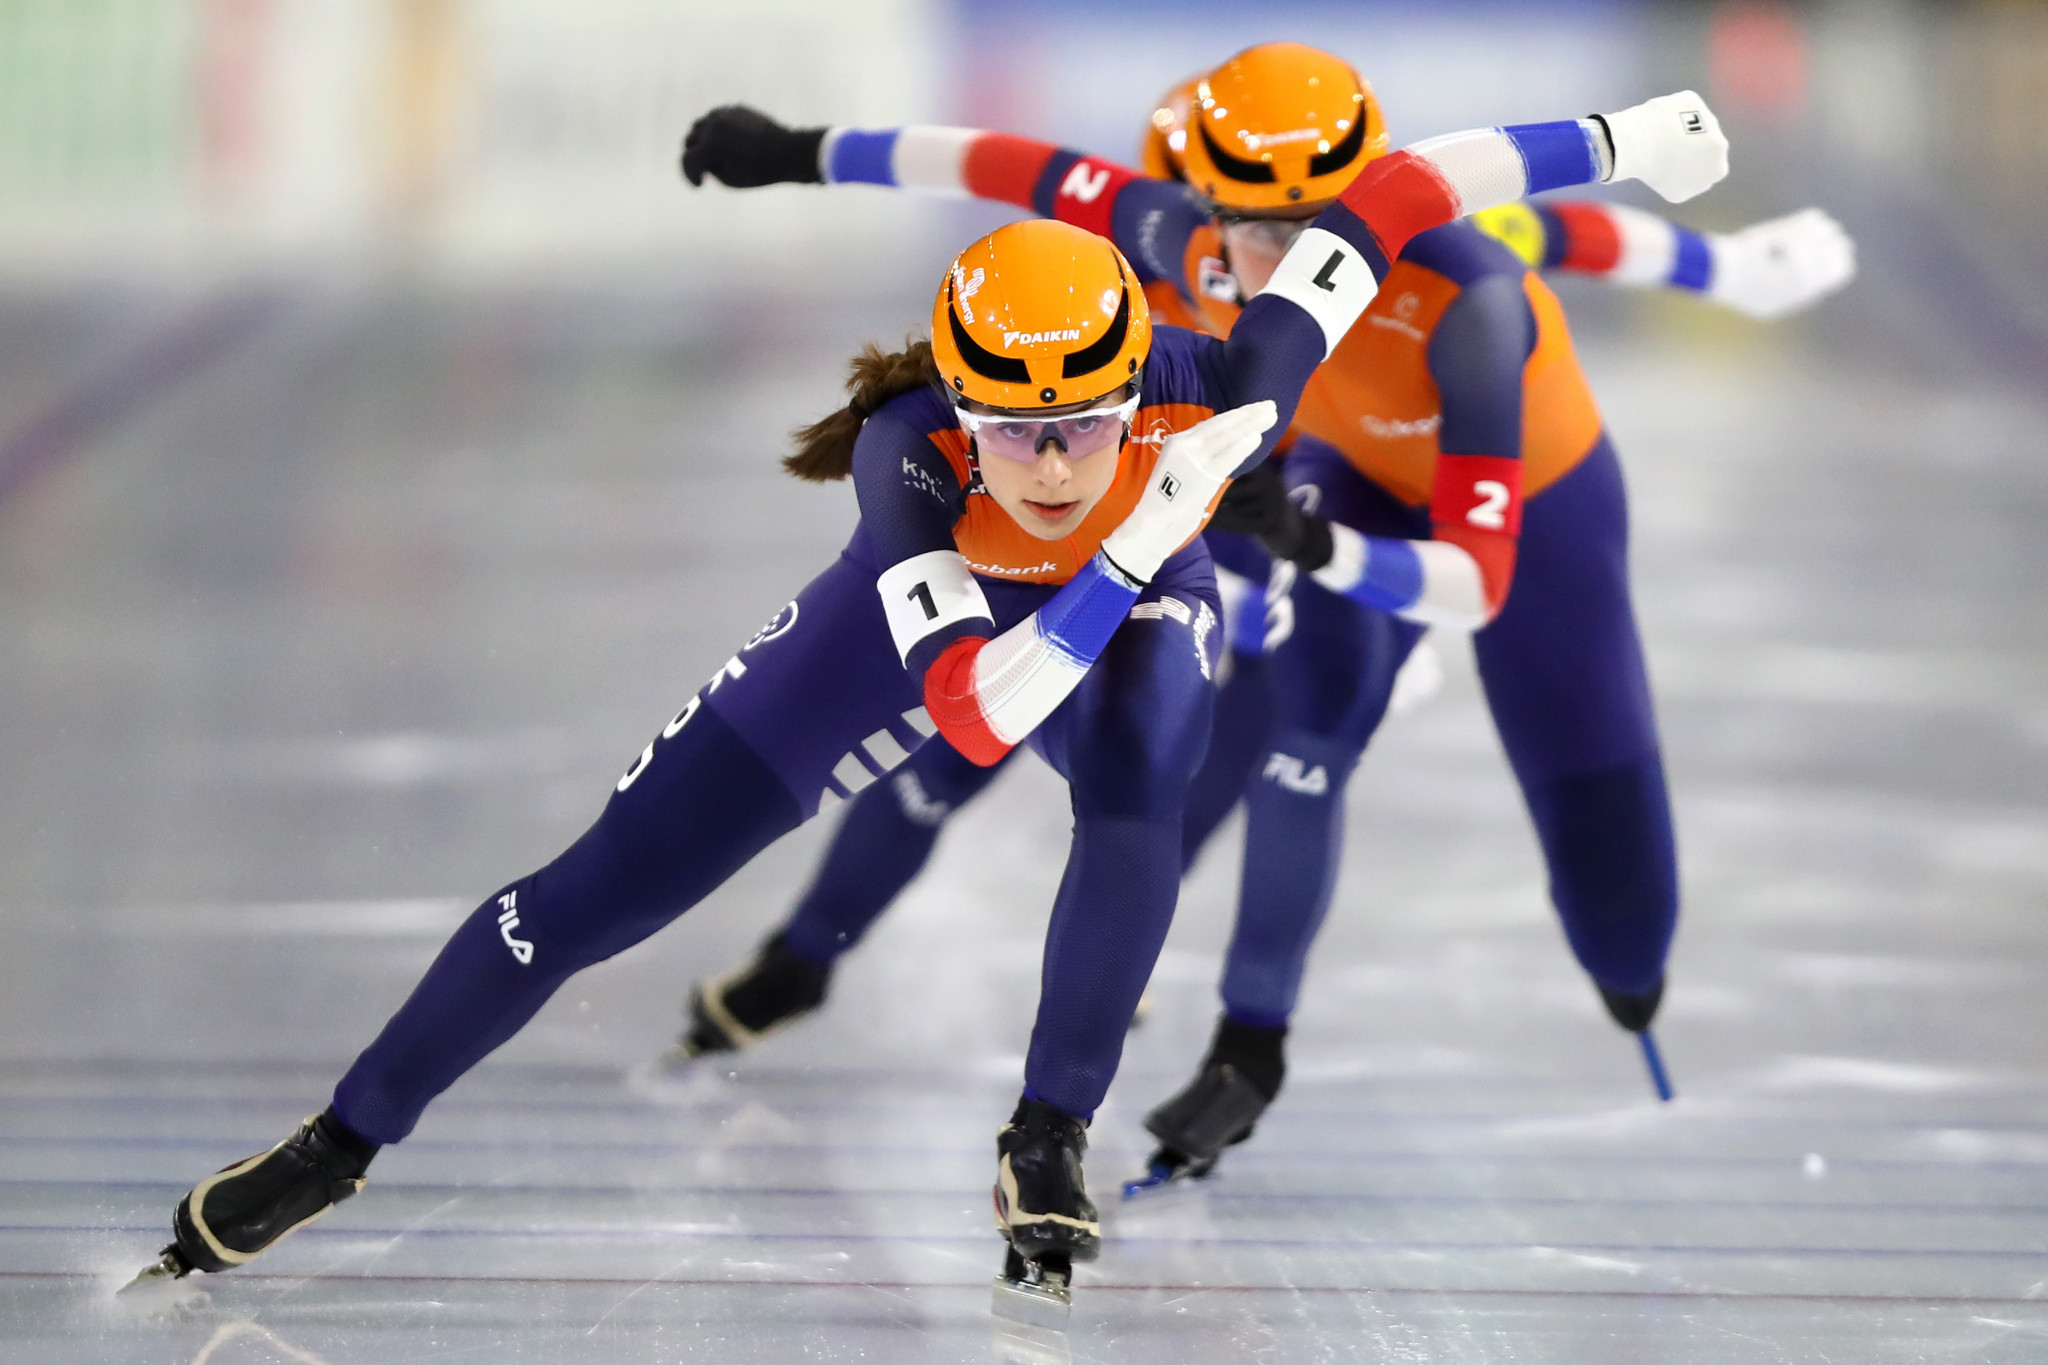 Dutch women lock out podium at ISU World Junior Speed Skating Championships